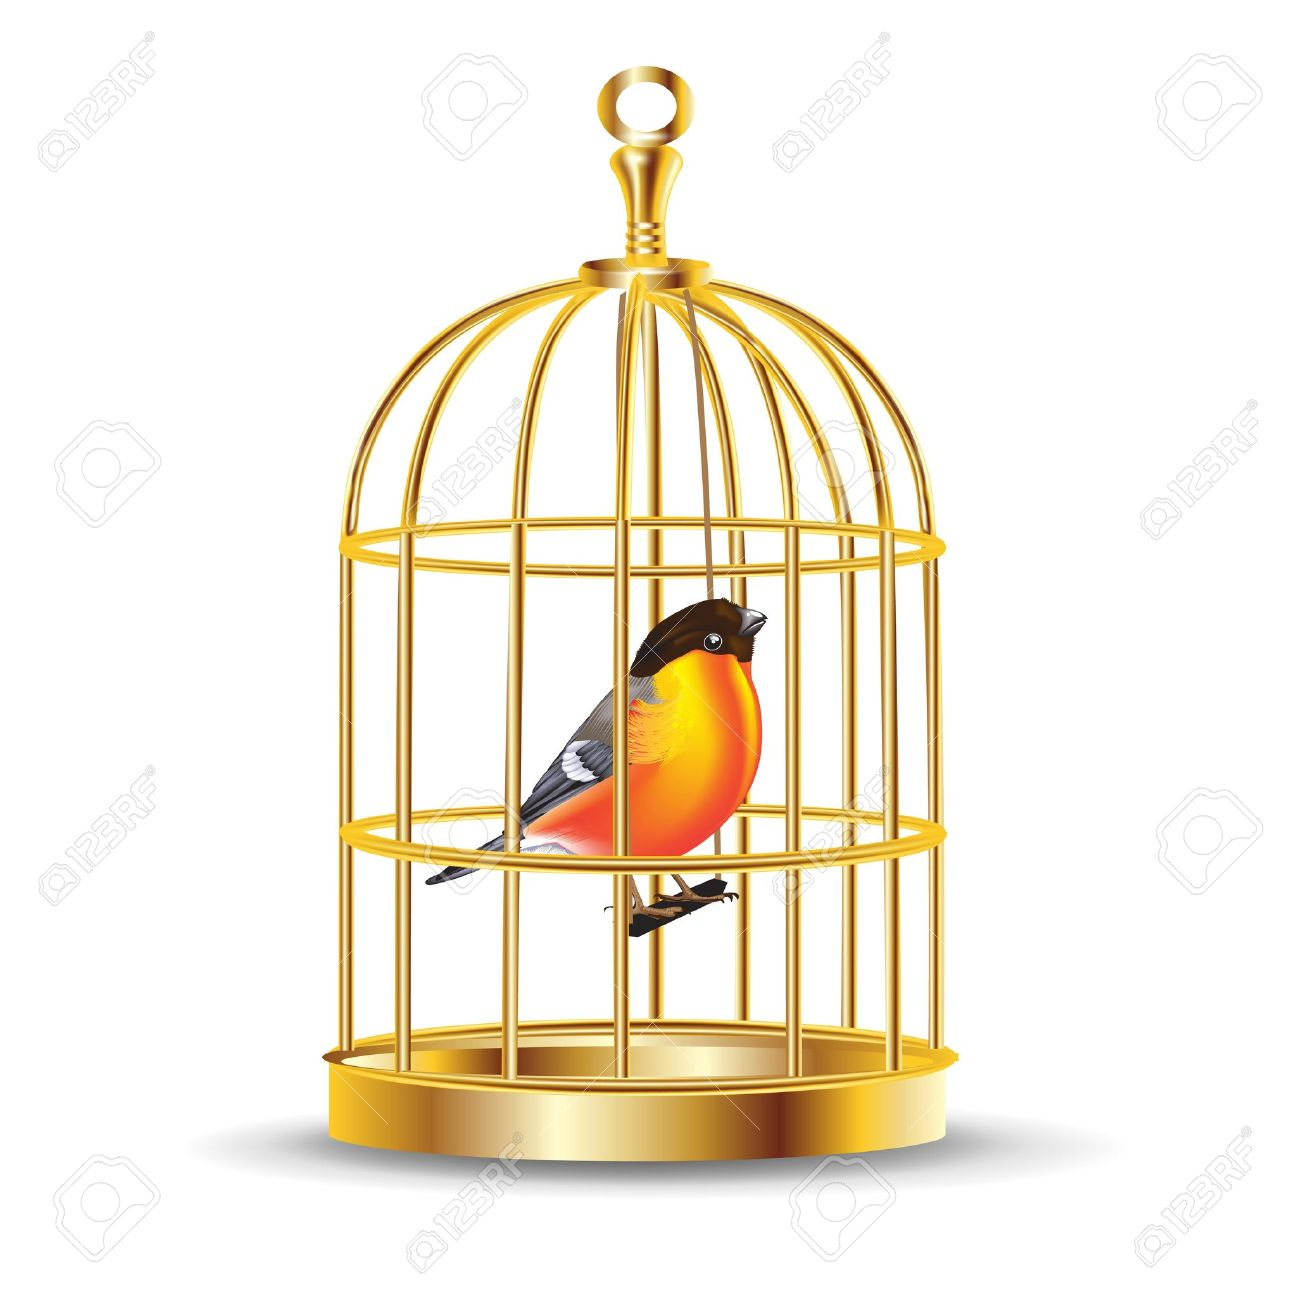 Bird In Cage Clipart.